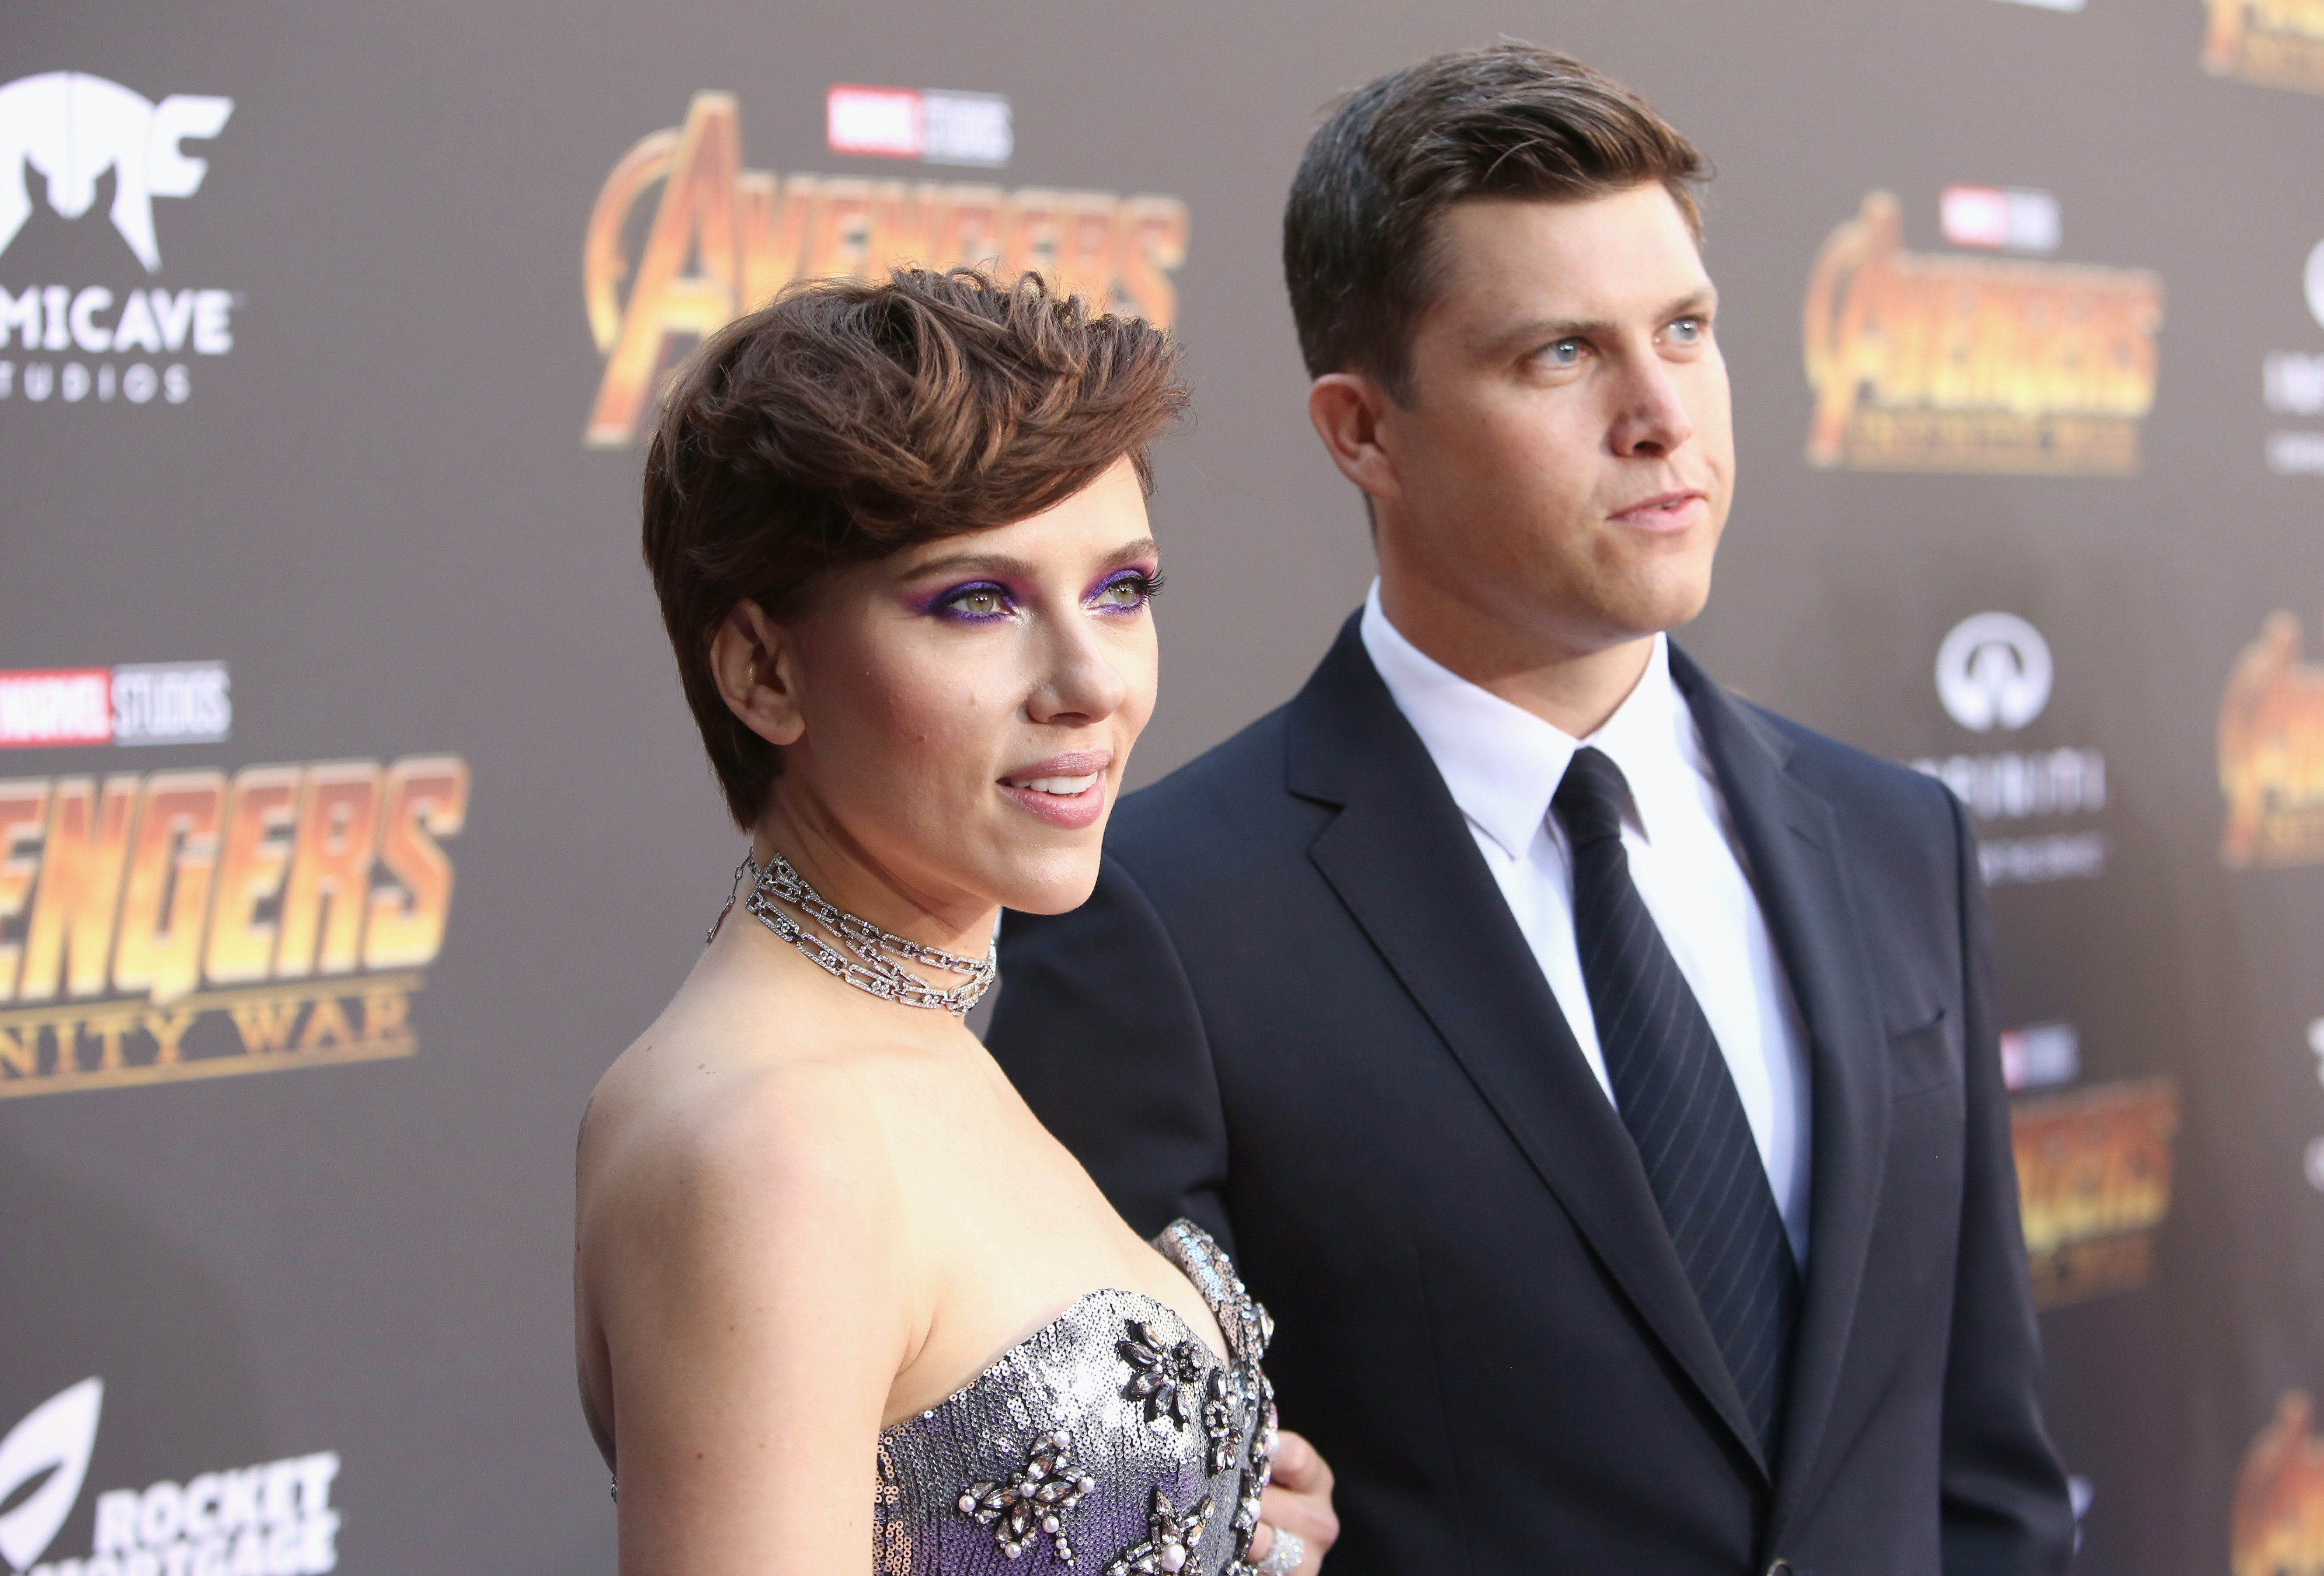 How Did Scarlett Johansson Colin Jost Meet The Couple Just Made Their Red Carpet Debut Together